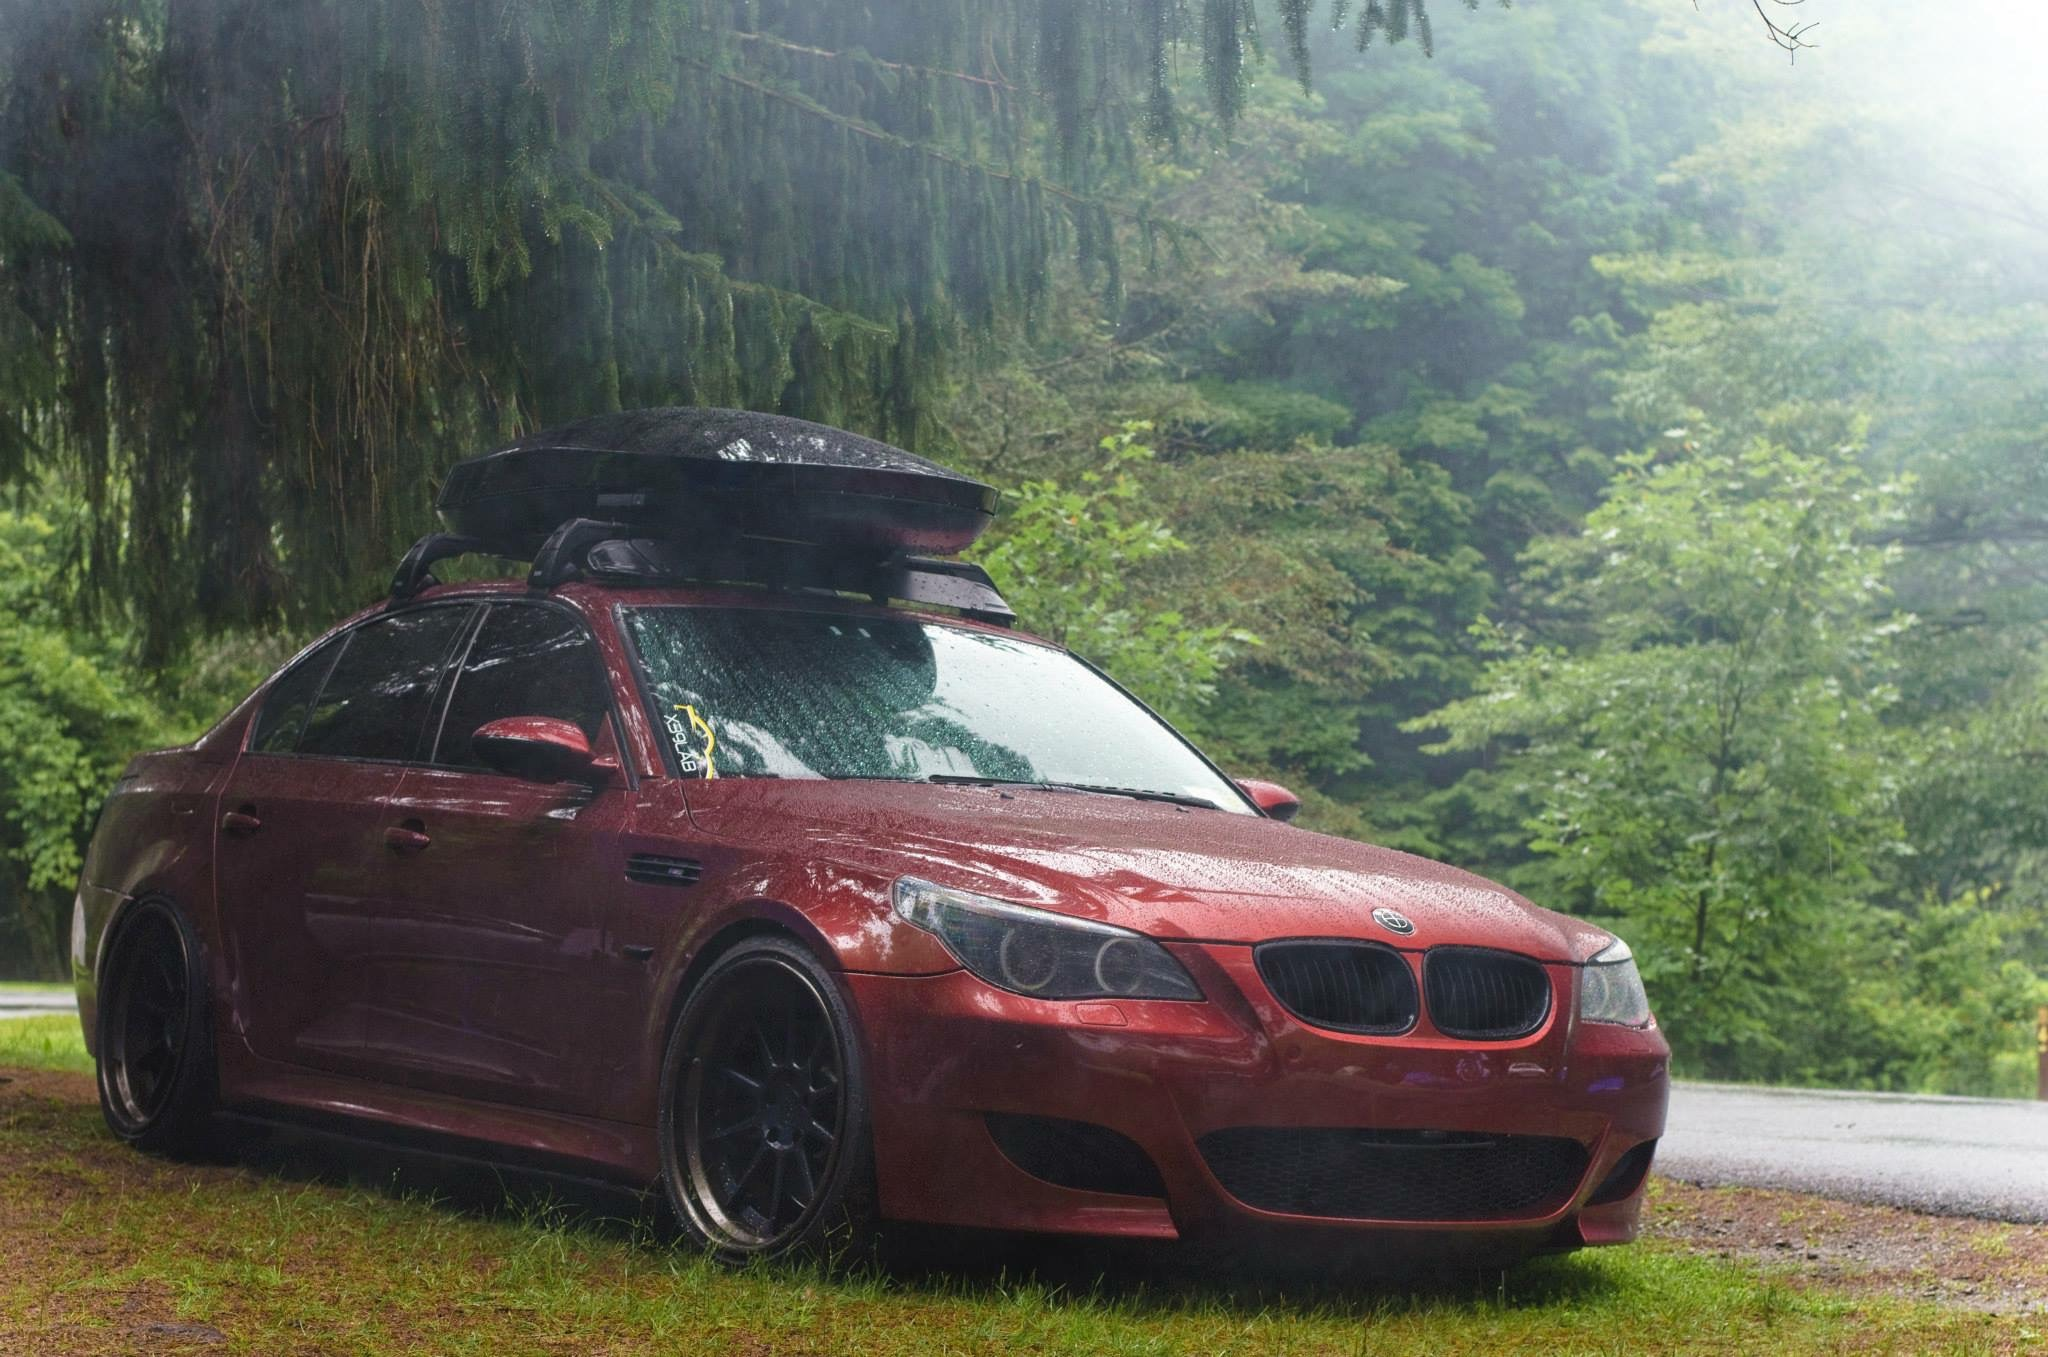 Yakima Cargo Box Newest Add On To My Roof Rack Bmw M5 Forum And M6 Forums